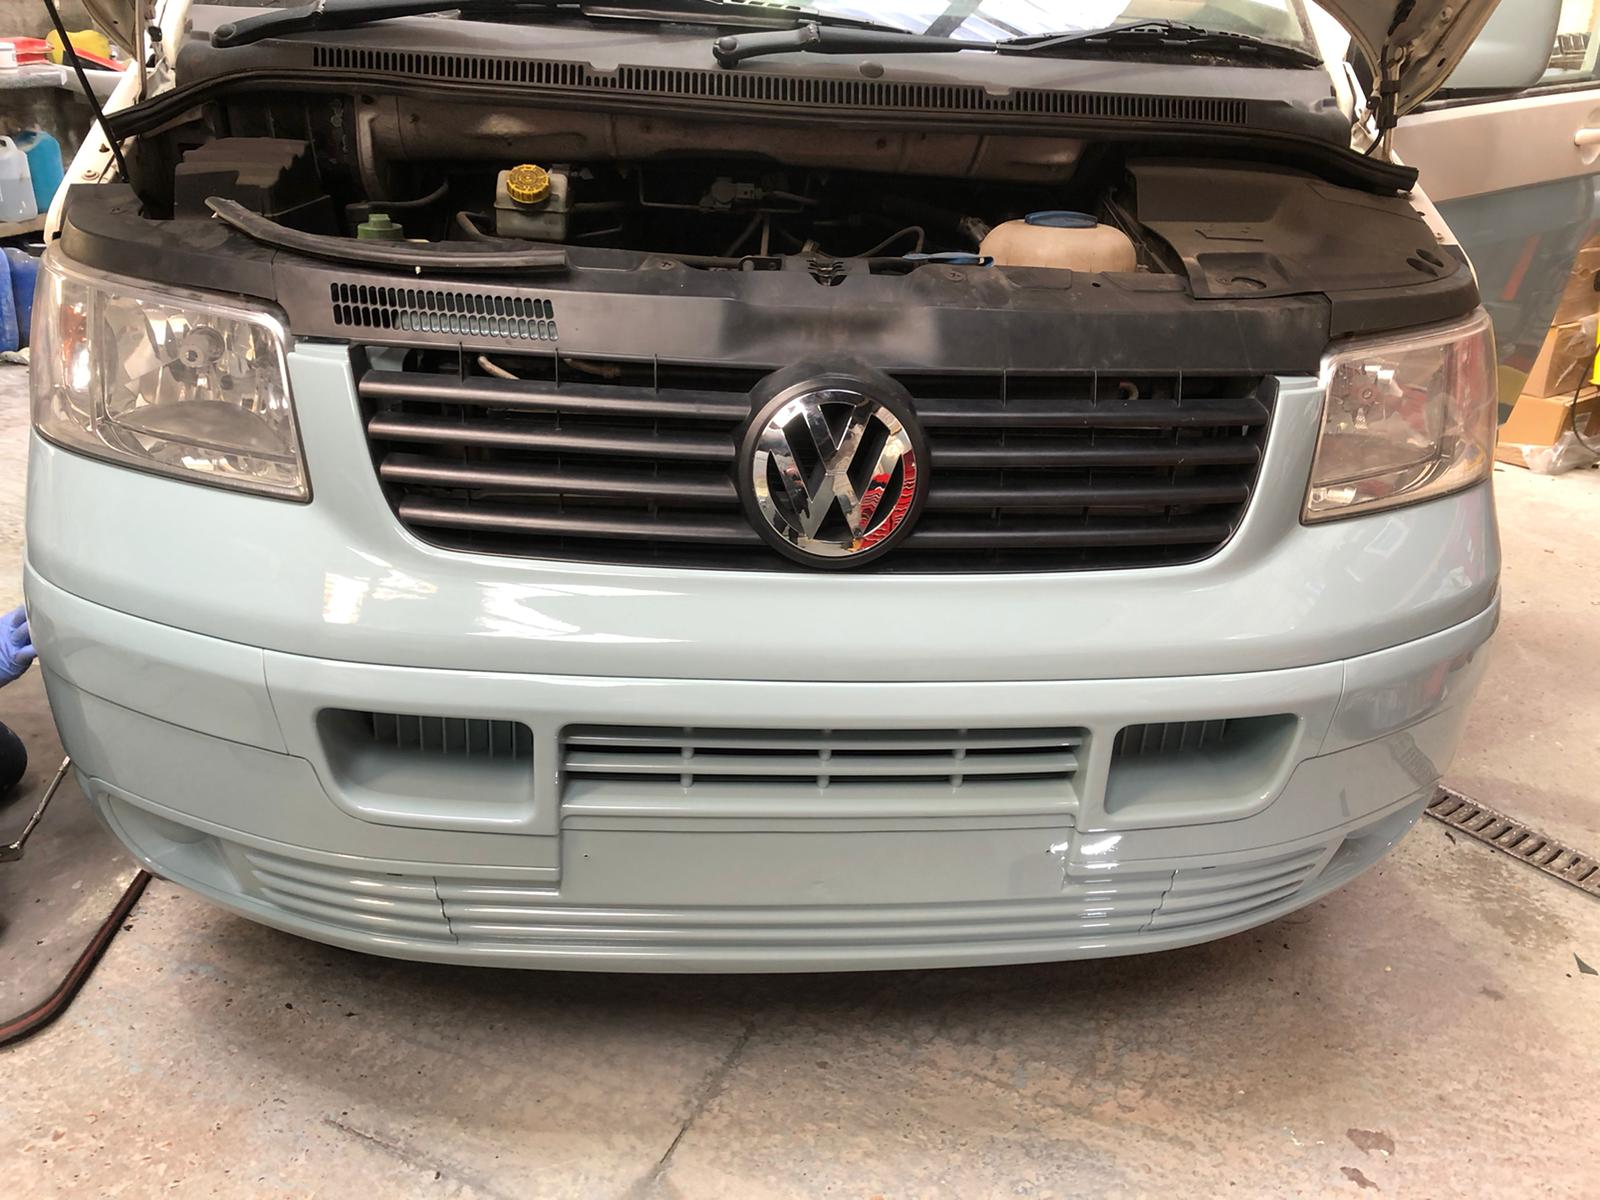 Two Tone VW Transporter Respray